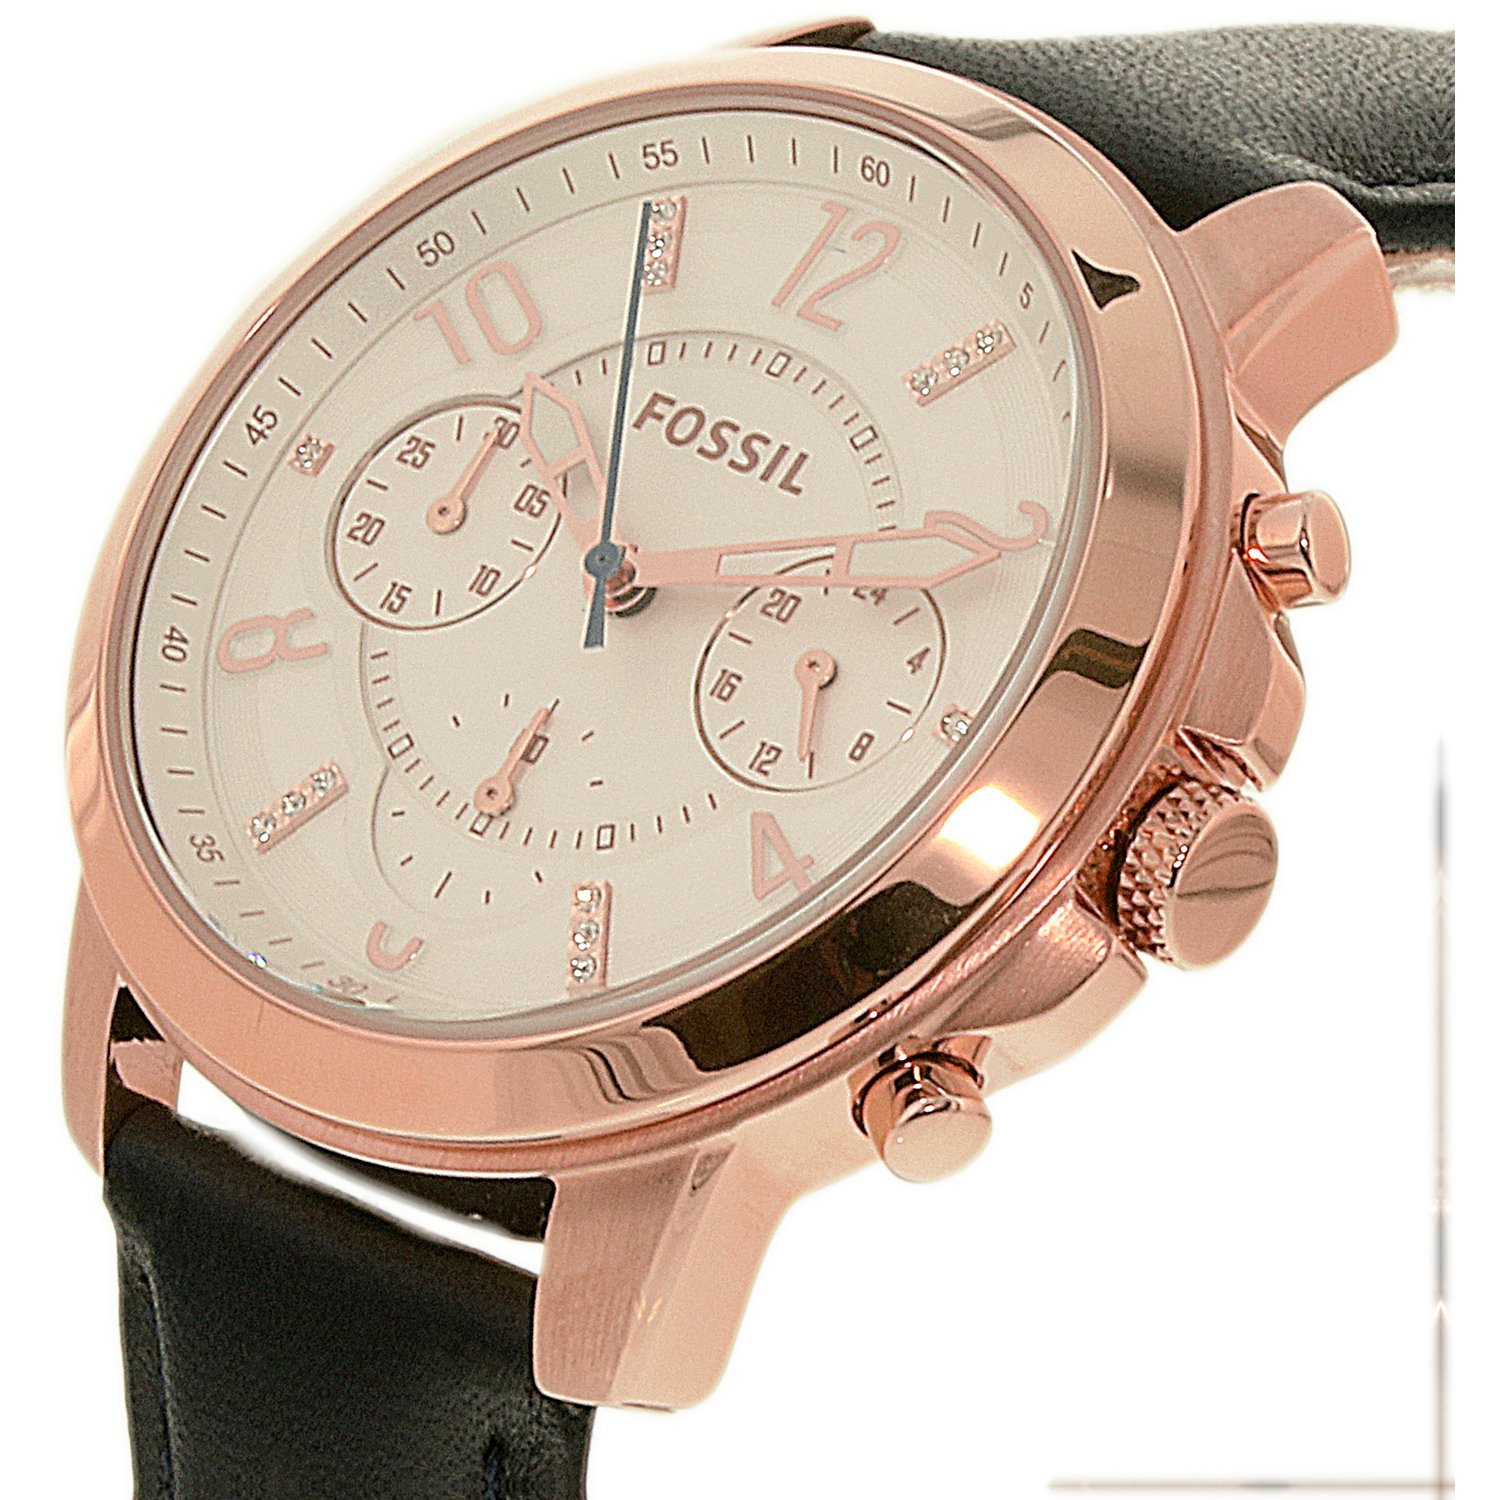 Fossil Gwynn Es4040 Daftar Harga Terbaru Dan Terlengkap Indonesia Jam Tangan Wanita Original Es4116 Chrono Wine Leather Womens Gold Stainless Steel Quartz Dress Watch Walmartcom